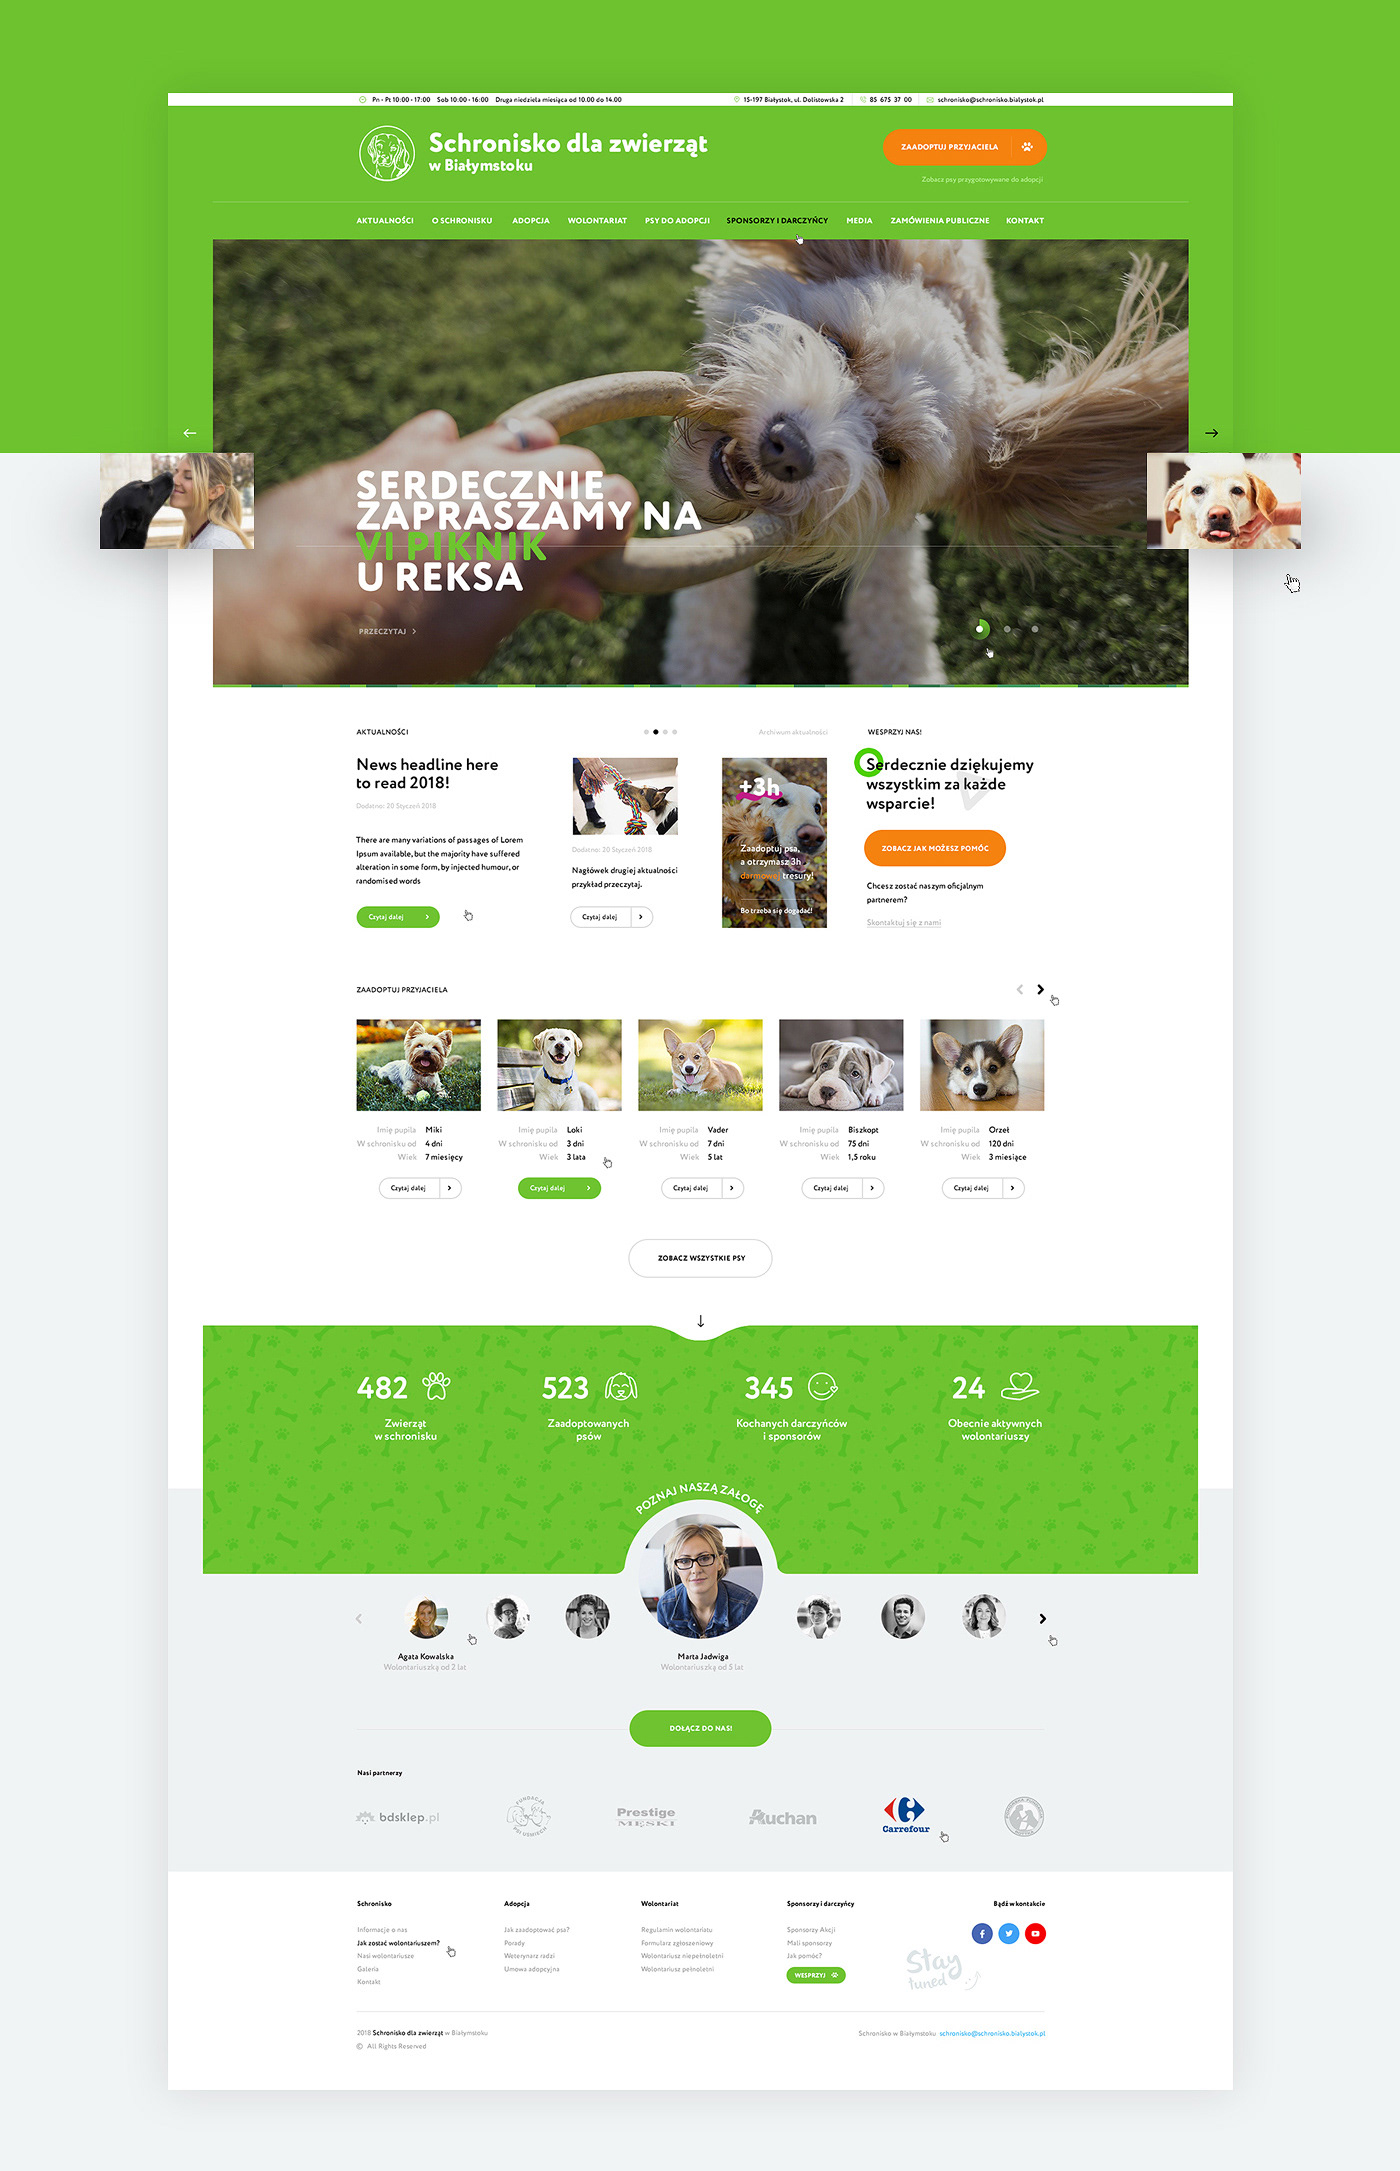 animals shelter dogs non-profit volunteers poland animal charity Website green